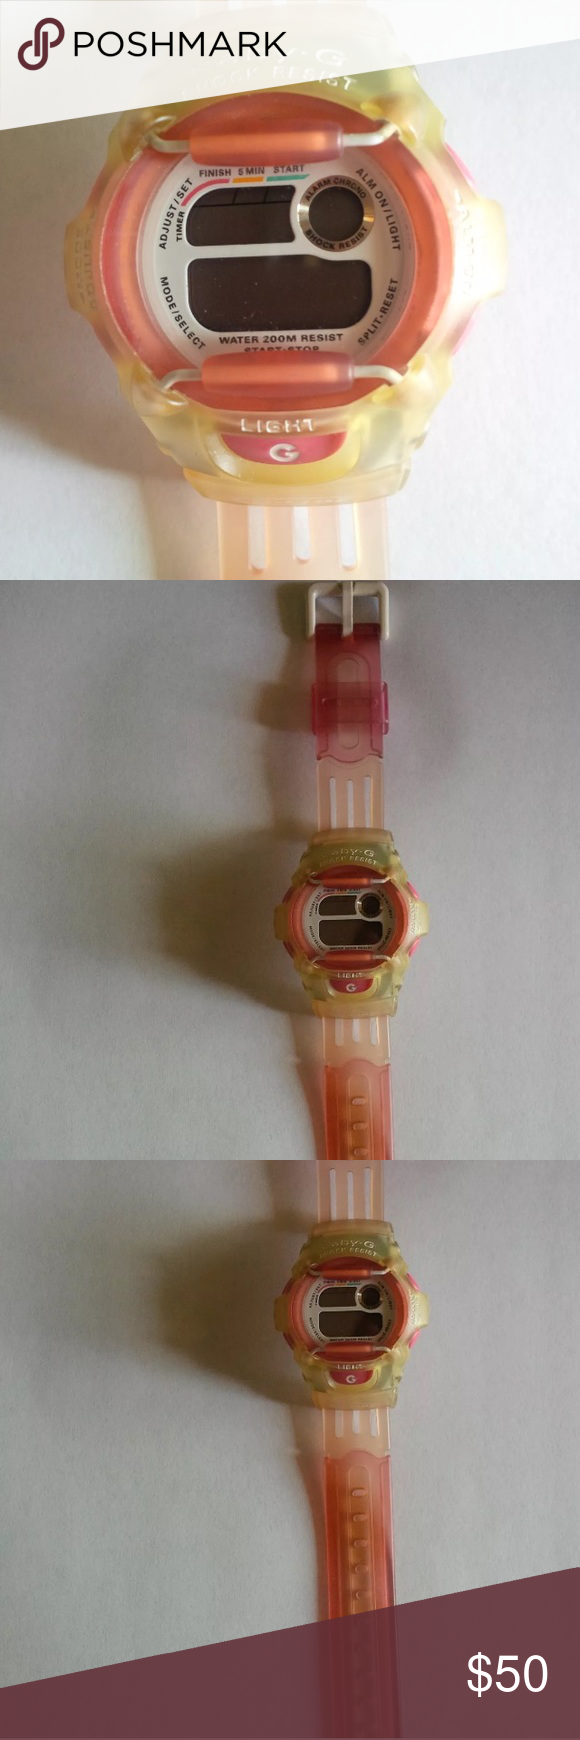 ✨Coming Soon✨Pink & Yellow G-Shock Watch How sporty and CUTE is this?! This item is a pre-owned Casio Women's Baby-G Shock Sport Watch in Pink/Yellow. In perfect working condition! All buttons and settings work. No scratches and minimal signs of use. Back of watch says water resistant, stainless steel, model BG-370 1619. It has a G-lide wristband. These are ALL THE RAGE right now!!✨Price negotiable! G-Shock Accessories Watches